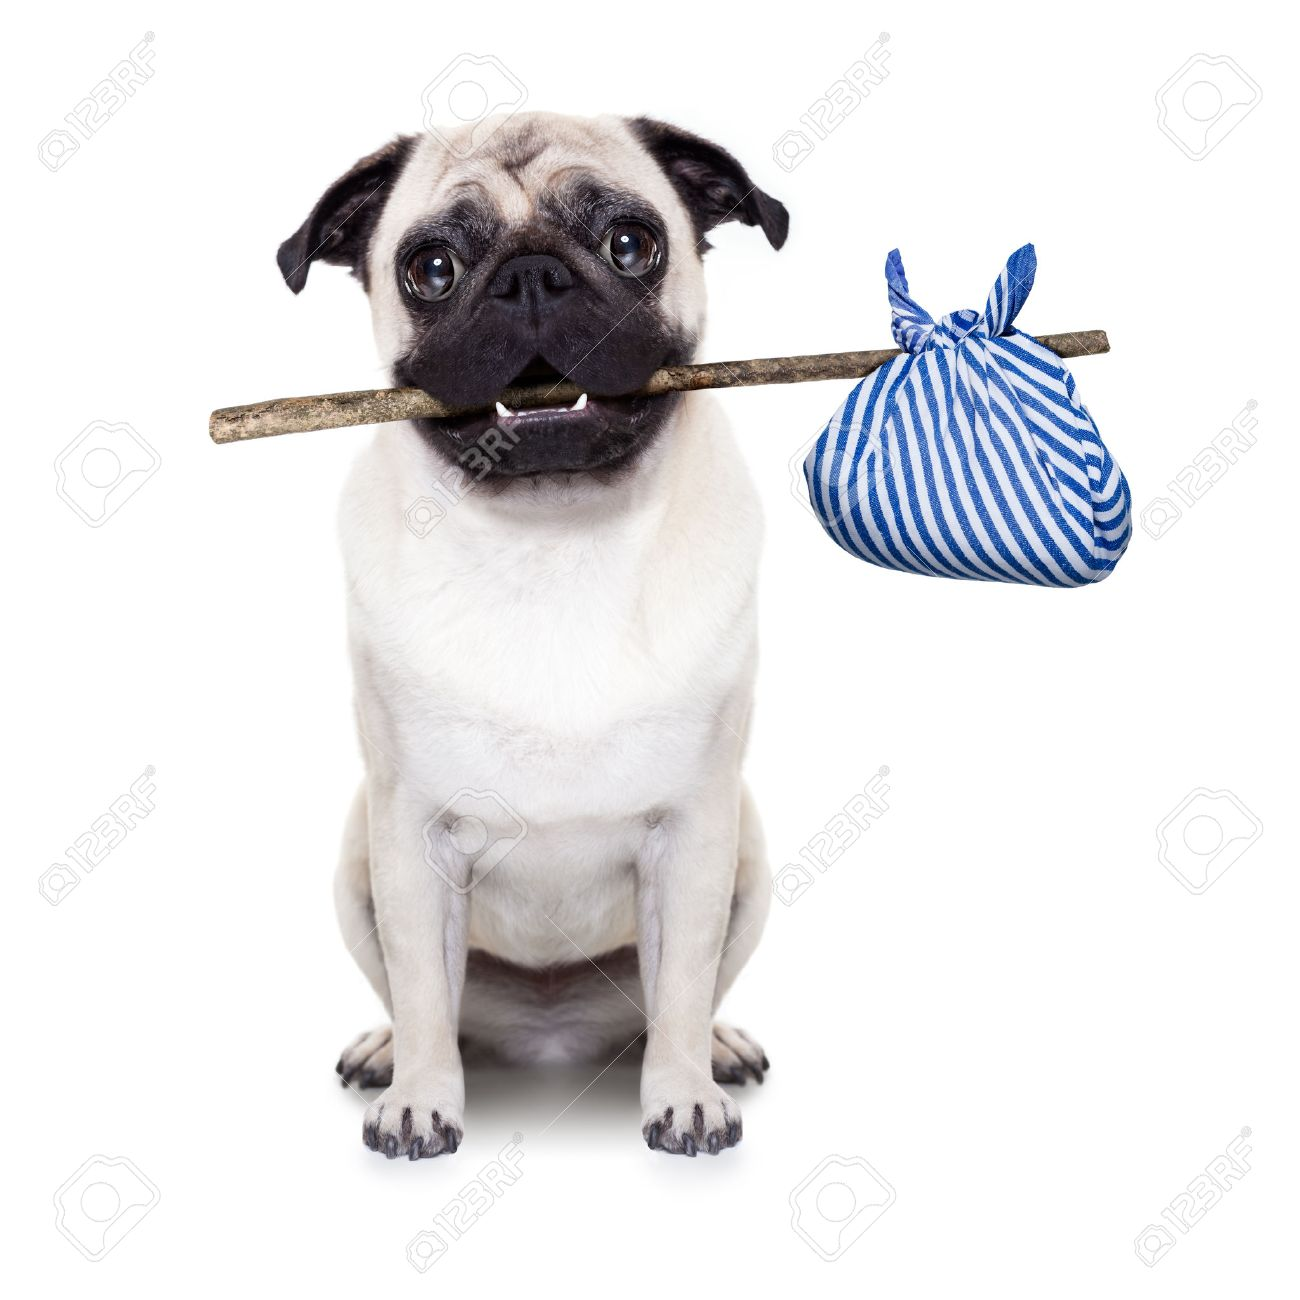 pug dog abandoned and left all alone on the road or street, with luggage bag , begging to come home to owners, - 52216085